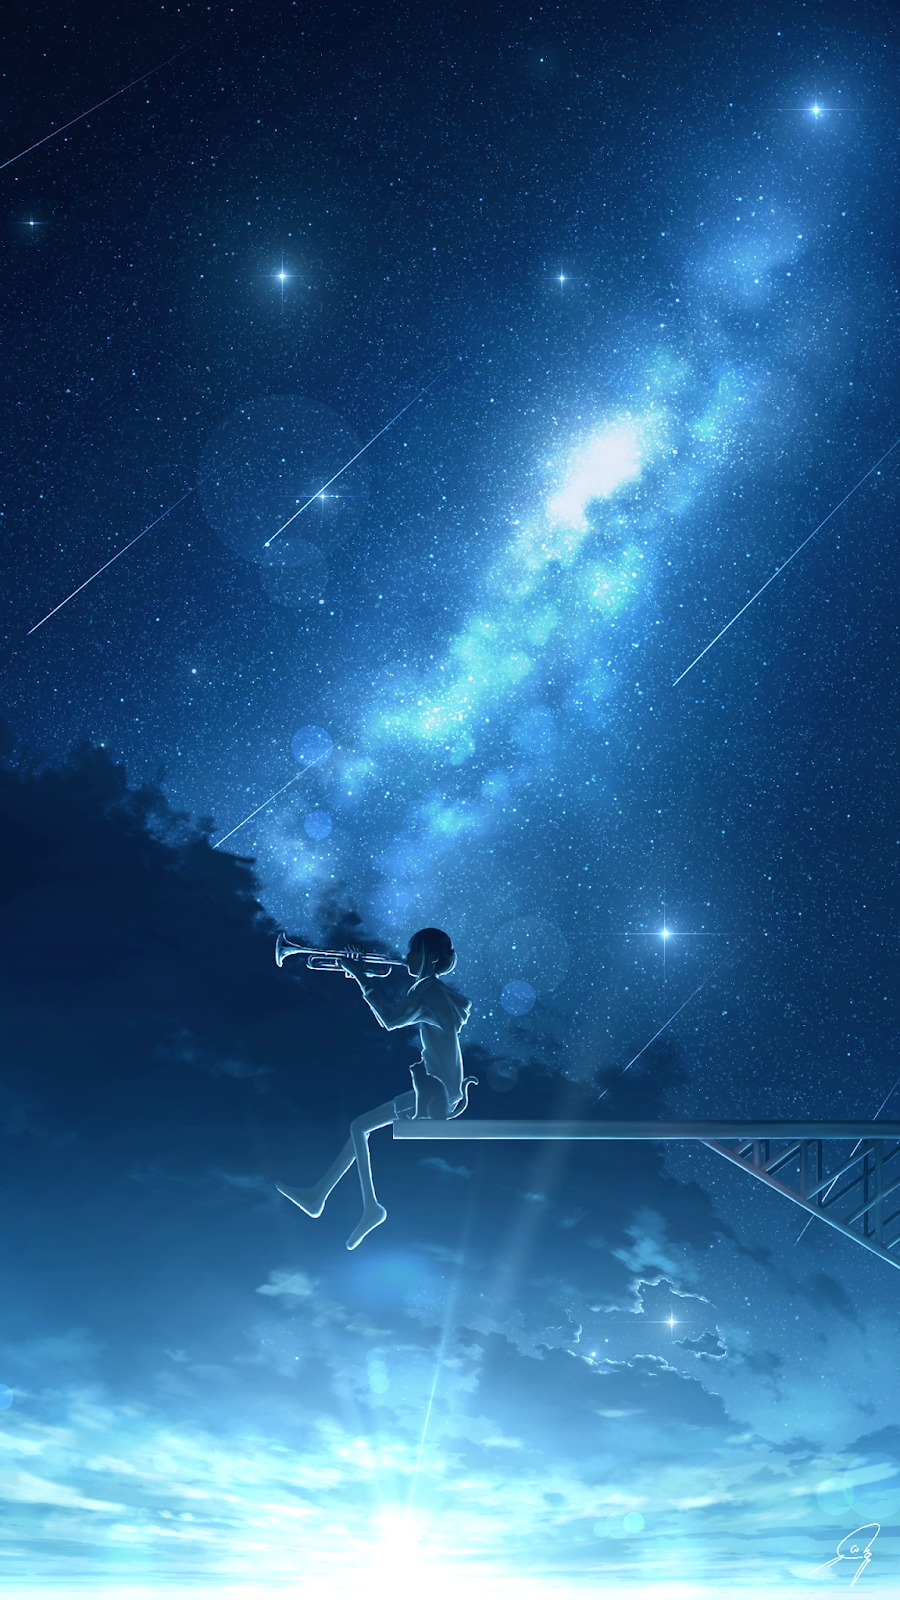 Under The Starry Night Wallpaper Iphone Android Background Followme Night Scenery Starry Night Wallpaper Scenery Wallpaper